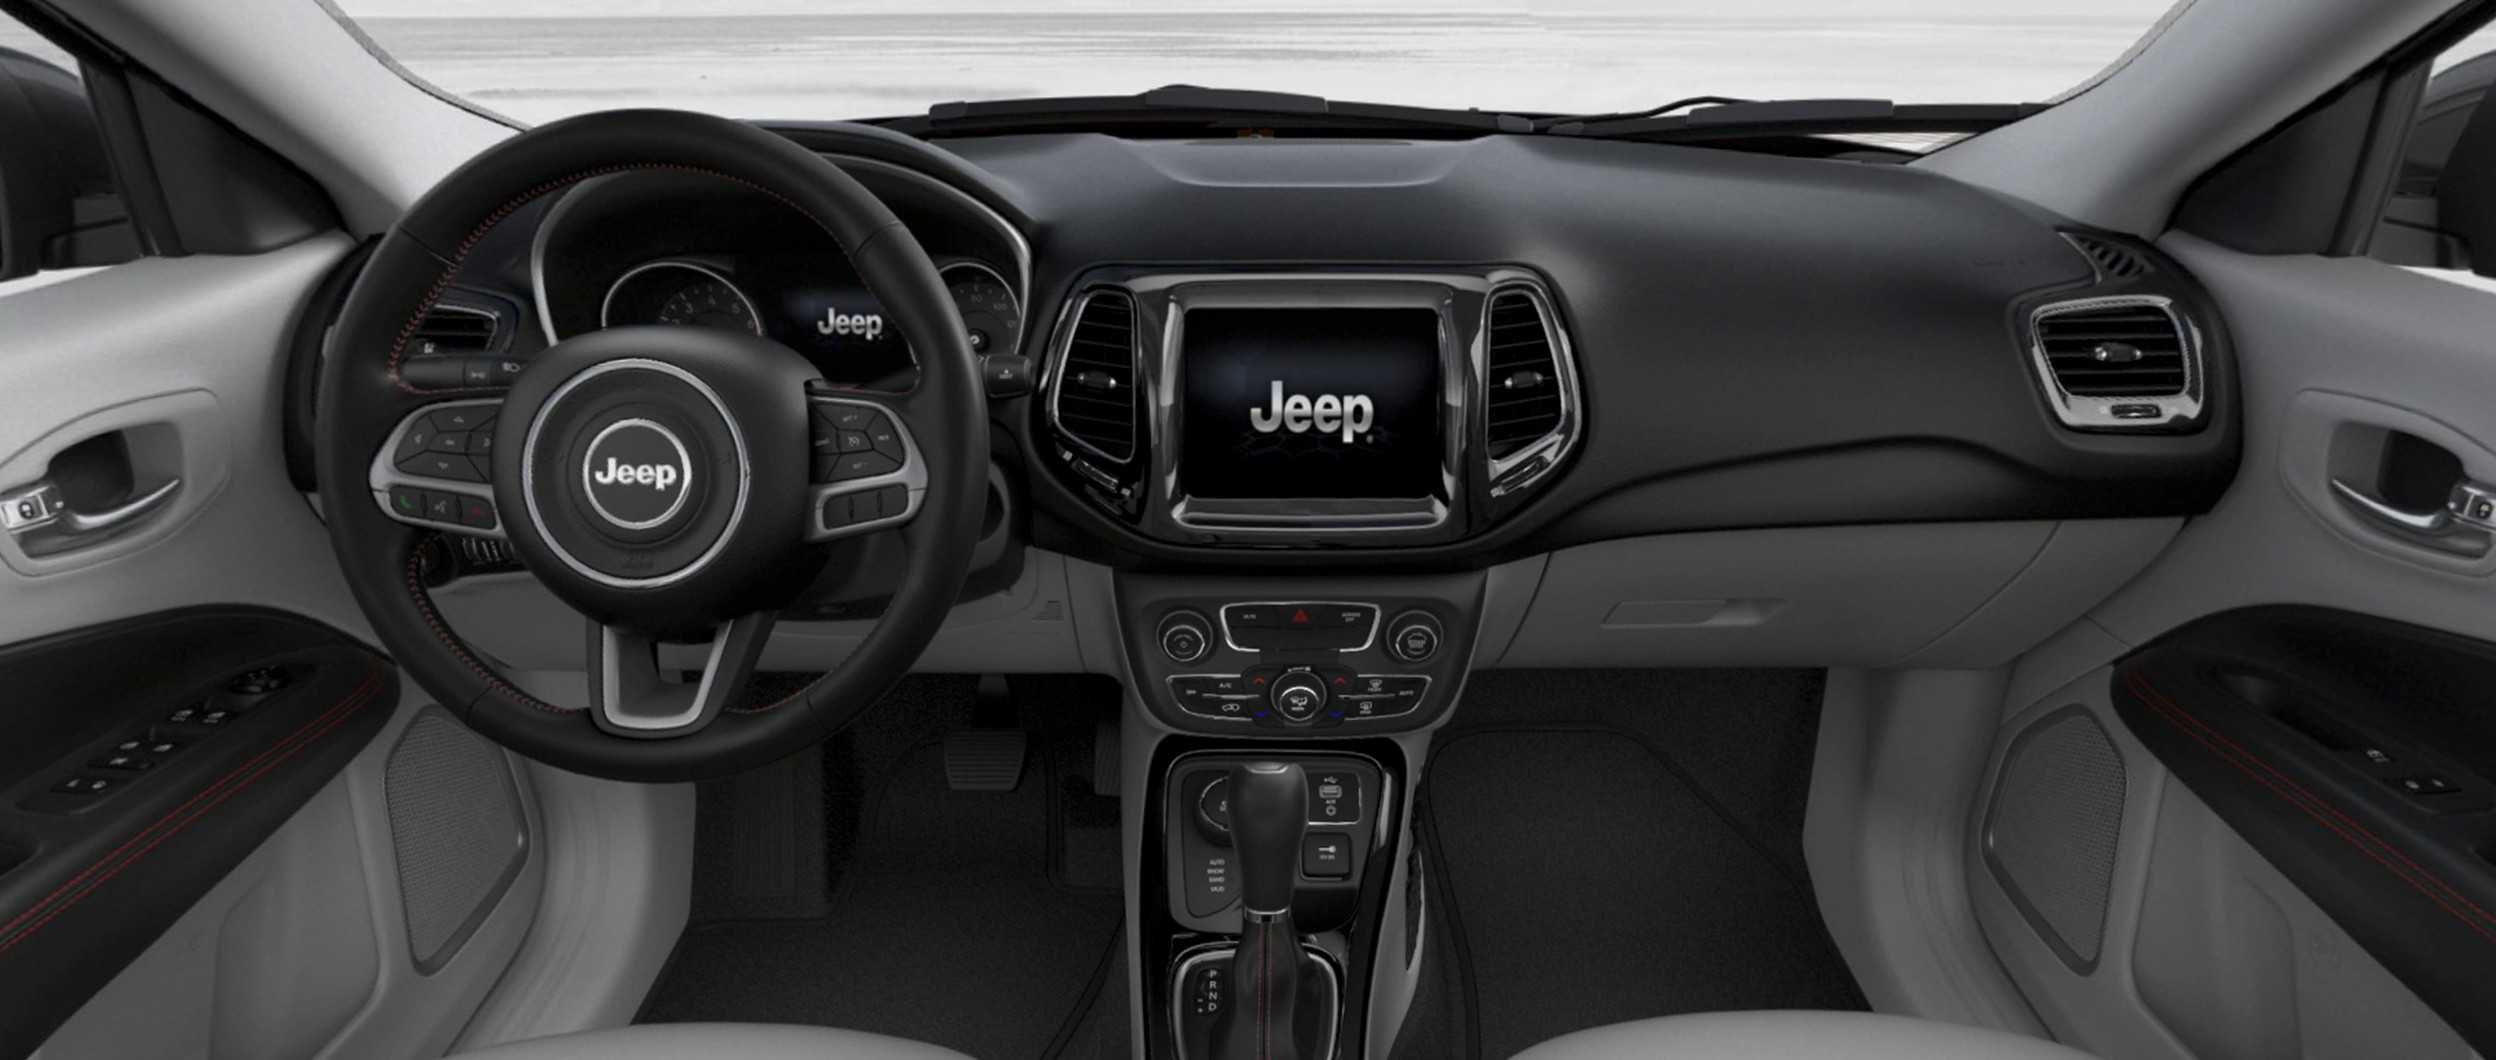 2019 Jeep Compass Compact Suv Canada Wiring Diagram For 2013 Interior